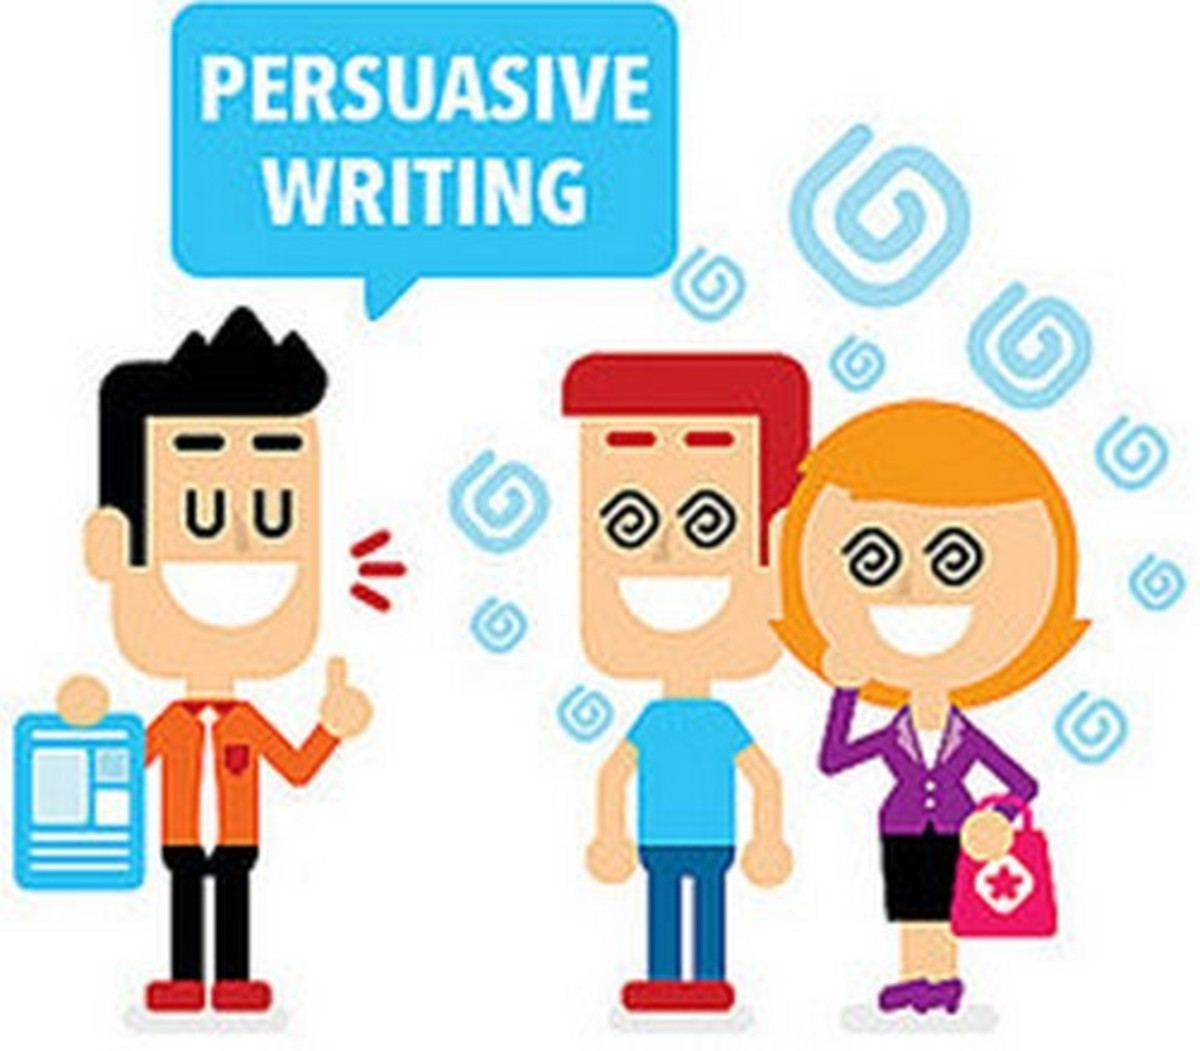 How to Craft Persuasive Writing Through Visualization